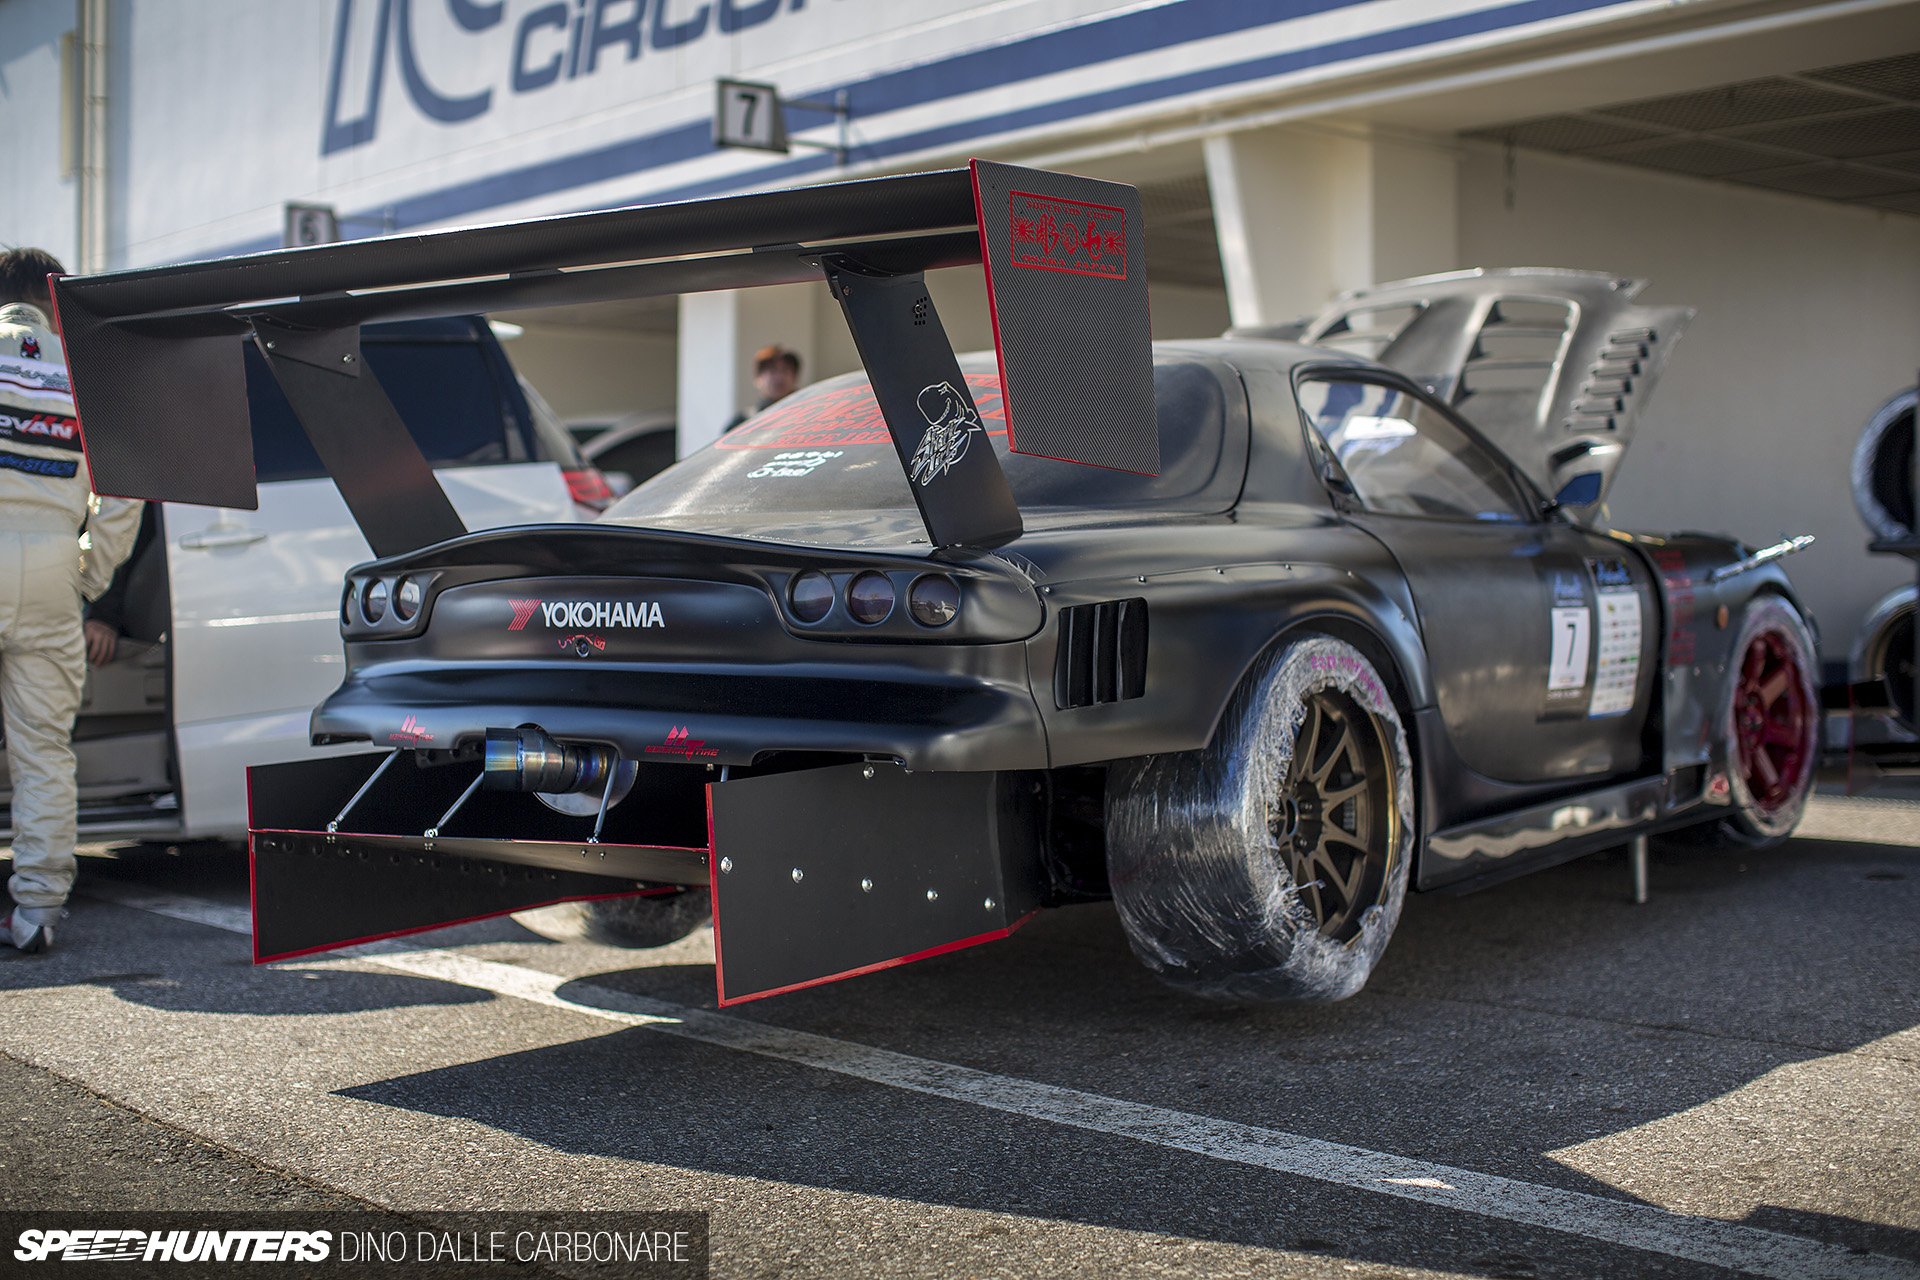 20b Buzz The Full Stage Fd3s Rx 7 Speedhunters